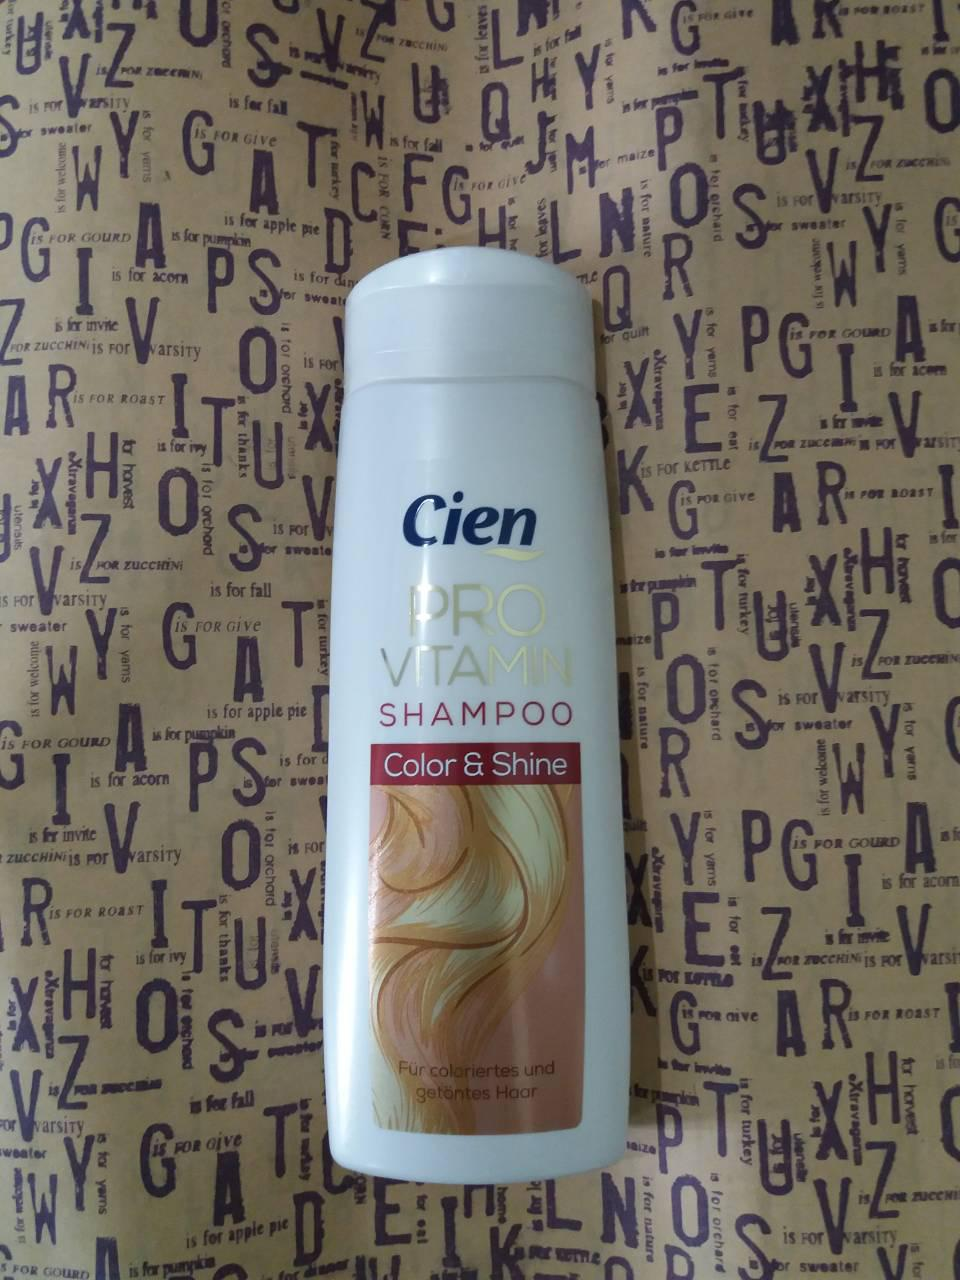 Шампунь-кондиционер Cien Provitamin Shampoo - Conditioner 2in1 Color & Shine для окрашенных волос 300 мл